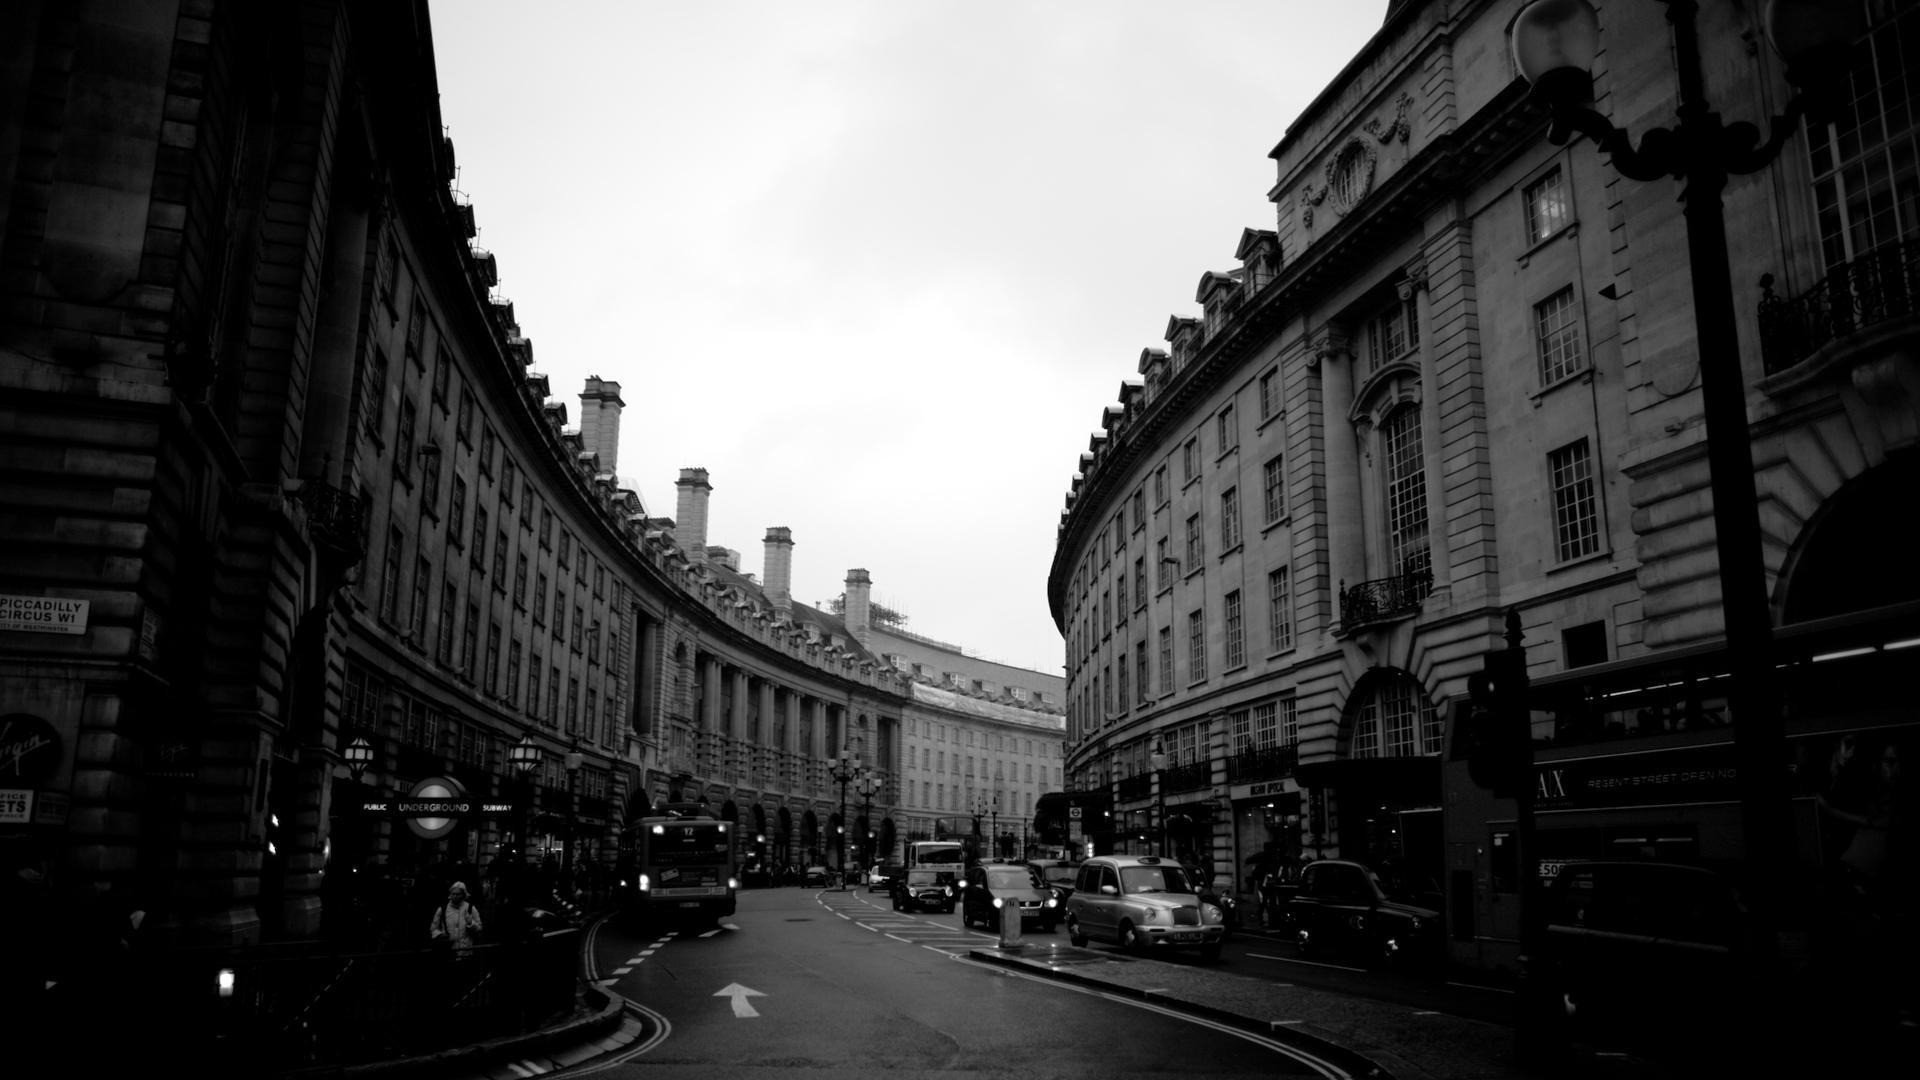 street night evening black and white building x